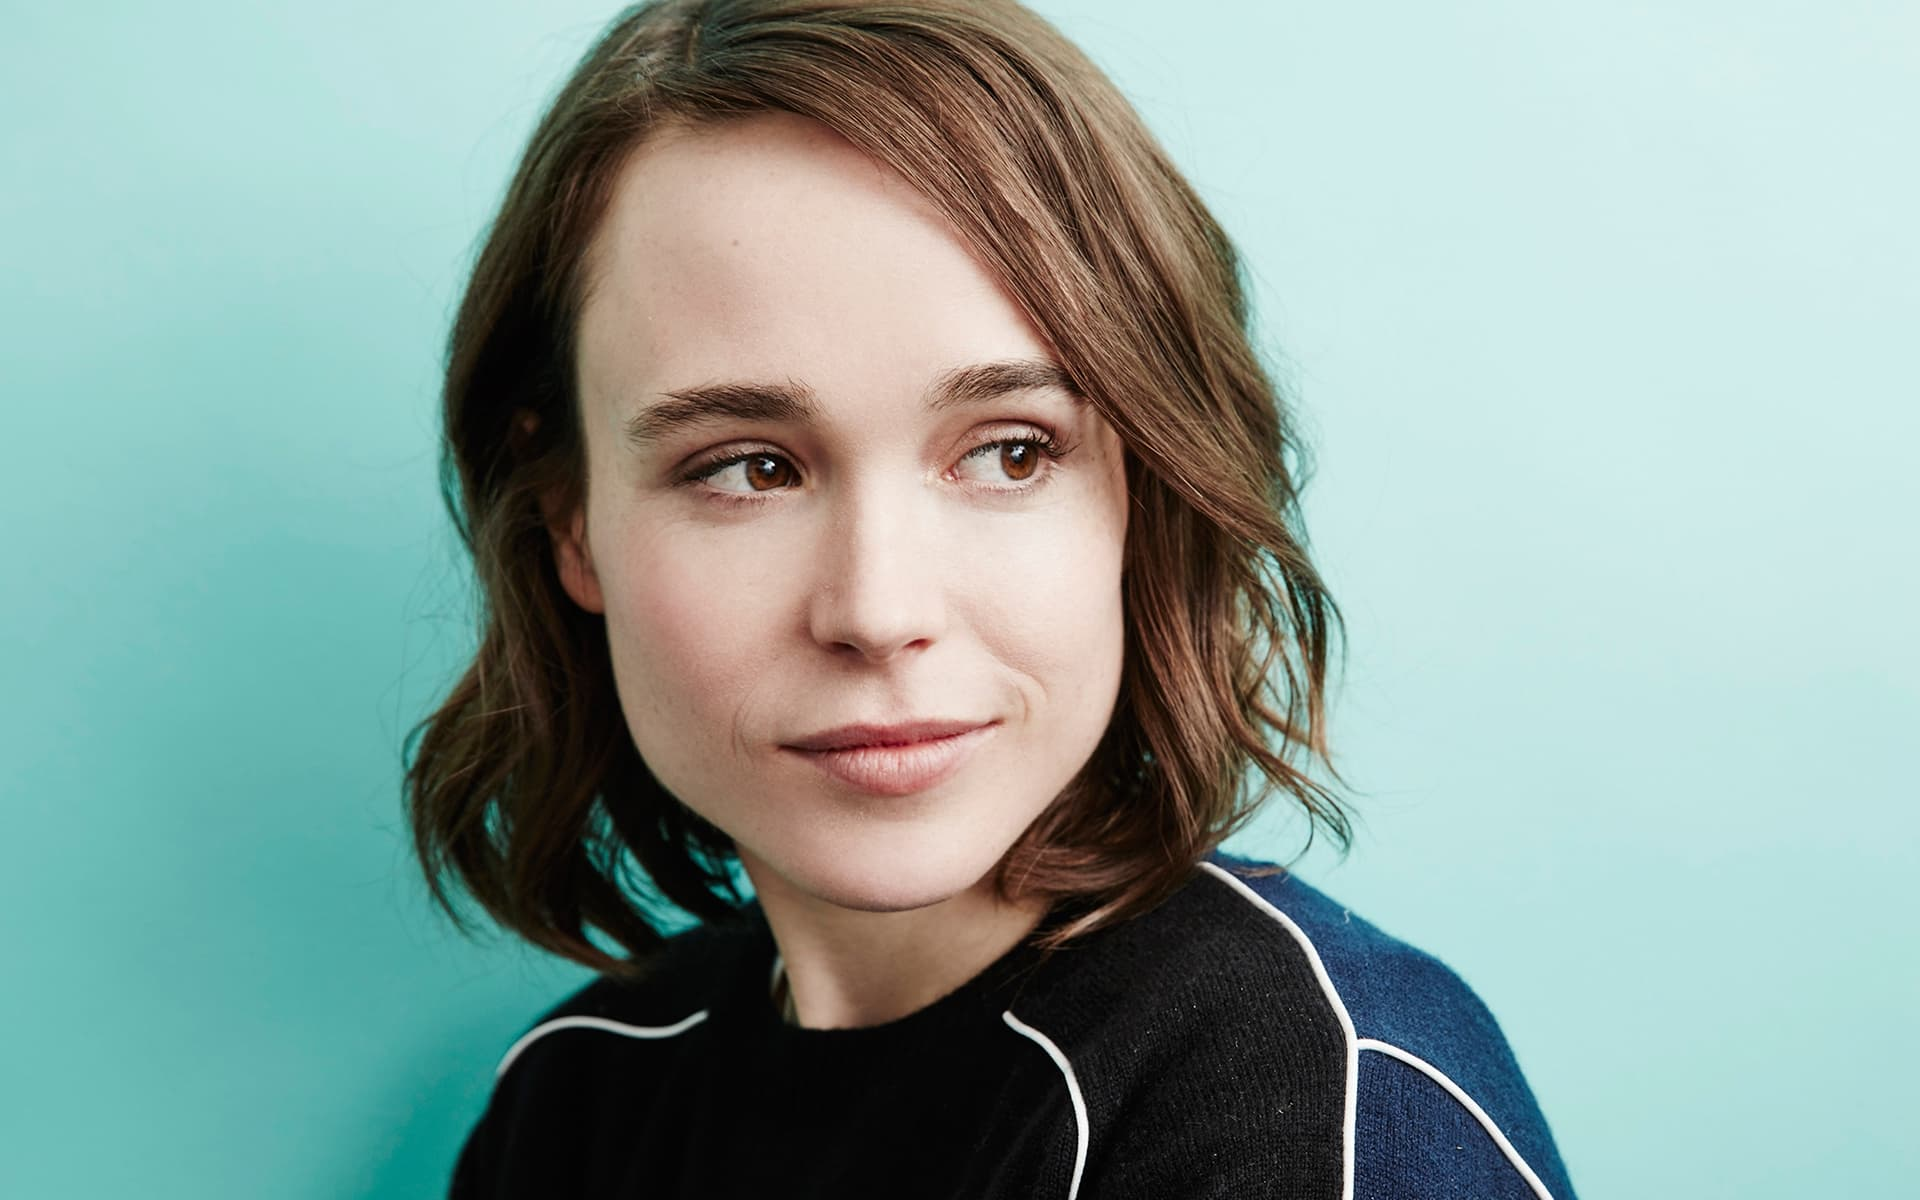 All Car Hd Wallpaper Download 17 Ellen Page Wallpapers High Quality Resolution Download